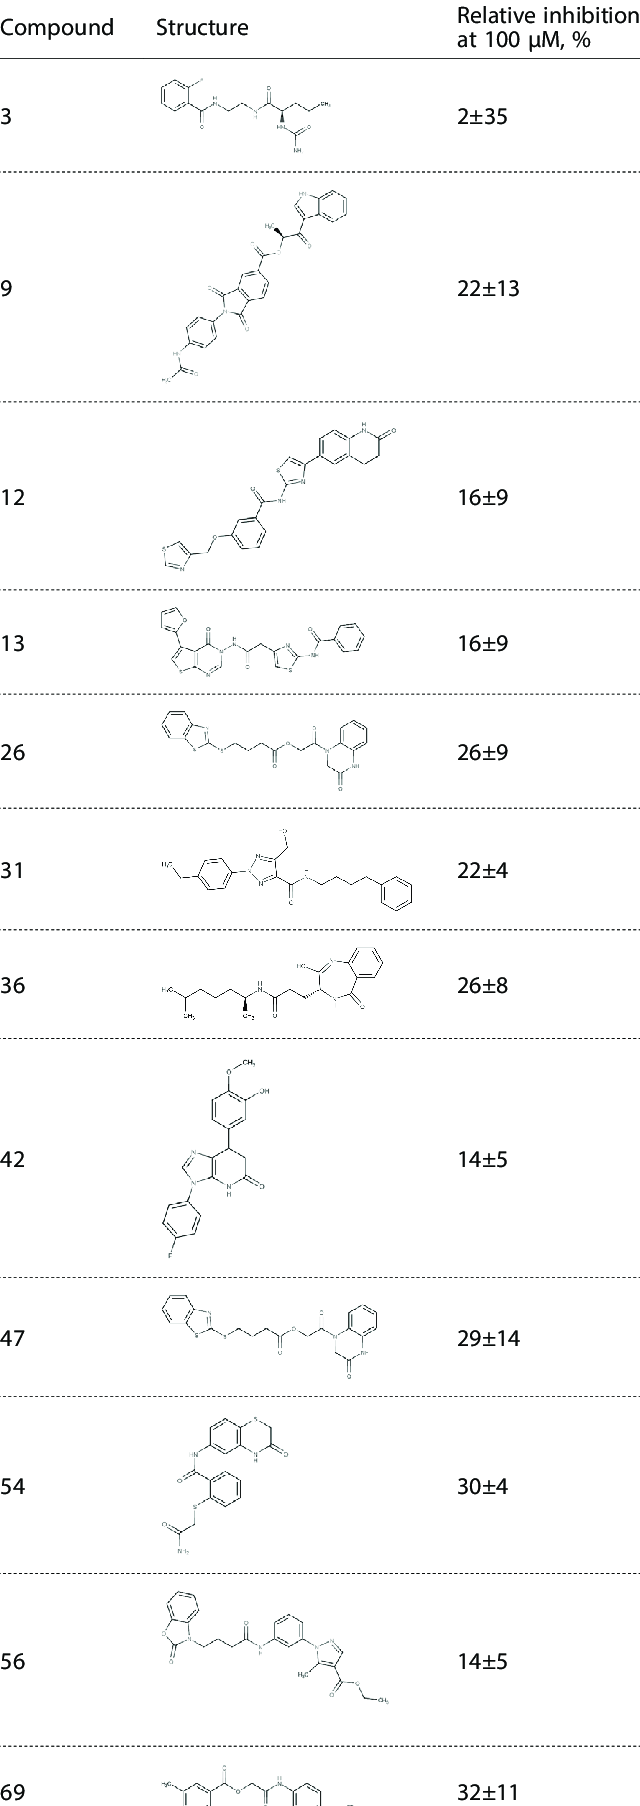 List of the most active compounds in the ATP hydrolysis